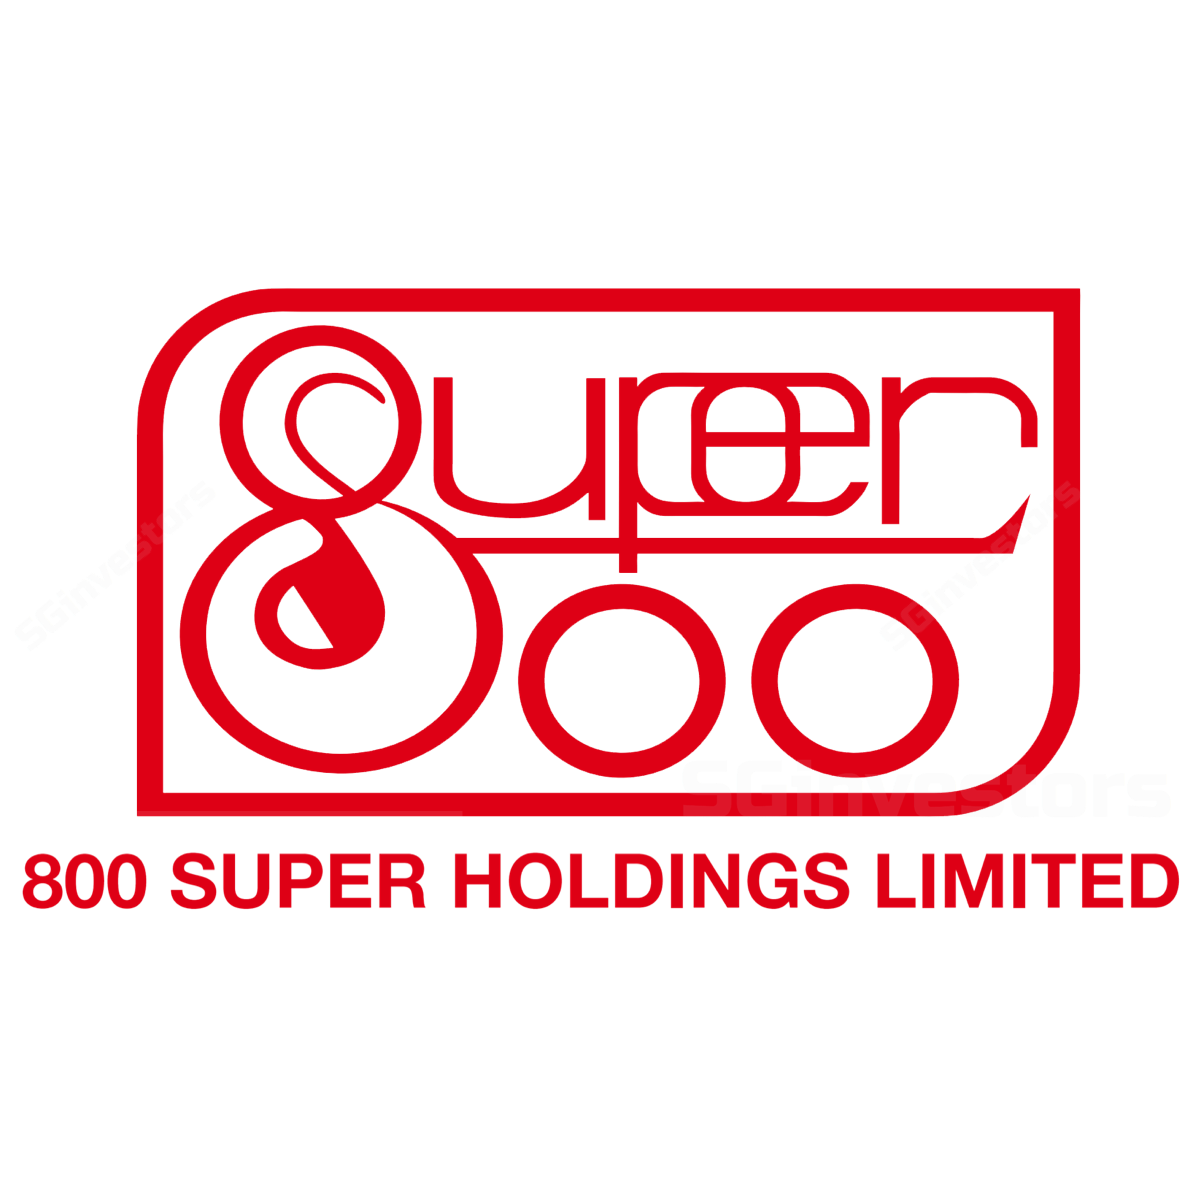 800 Super Holdings Ltd - Phillip Securities 2018-01-16: Gaining Market Share